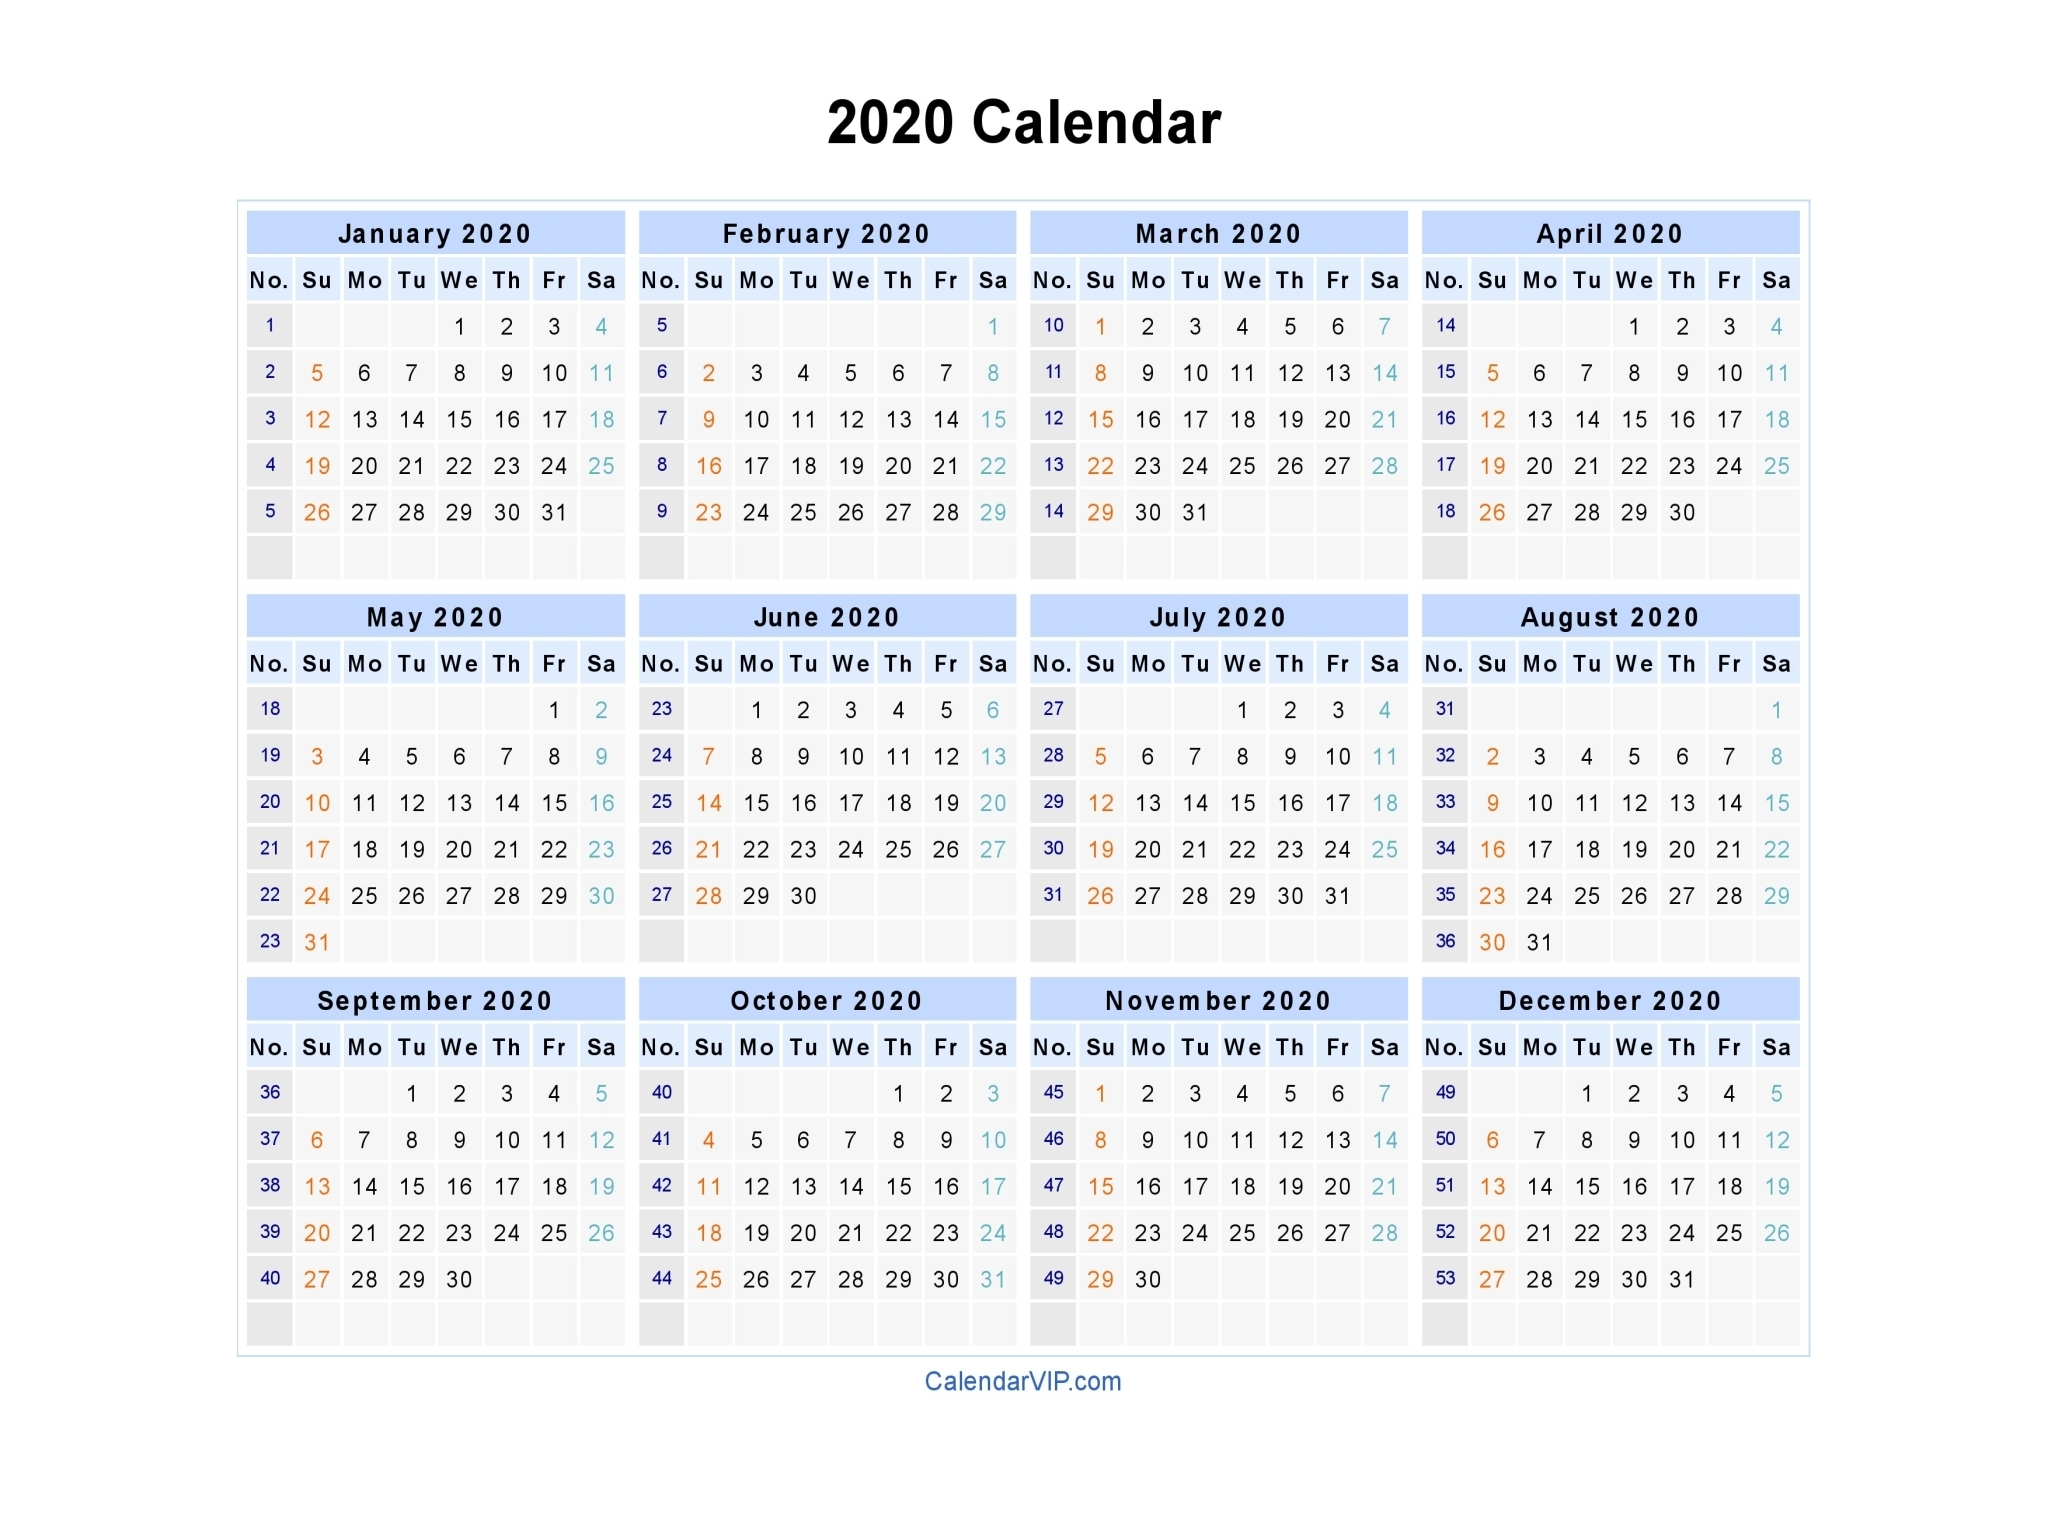 2020 Calendar - Blank Printable Calendar Template In Pdf Word Excel with regard to Blank 2020 Calendars To Edit